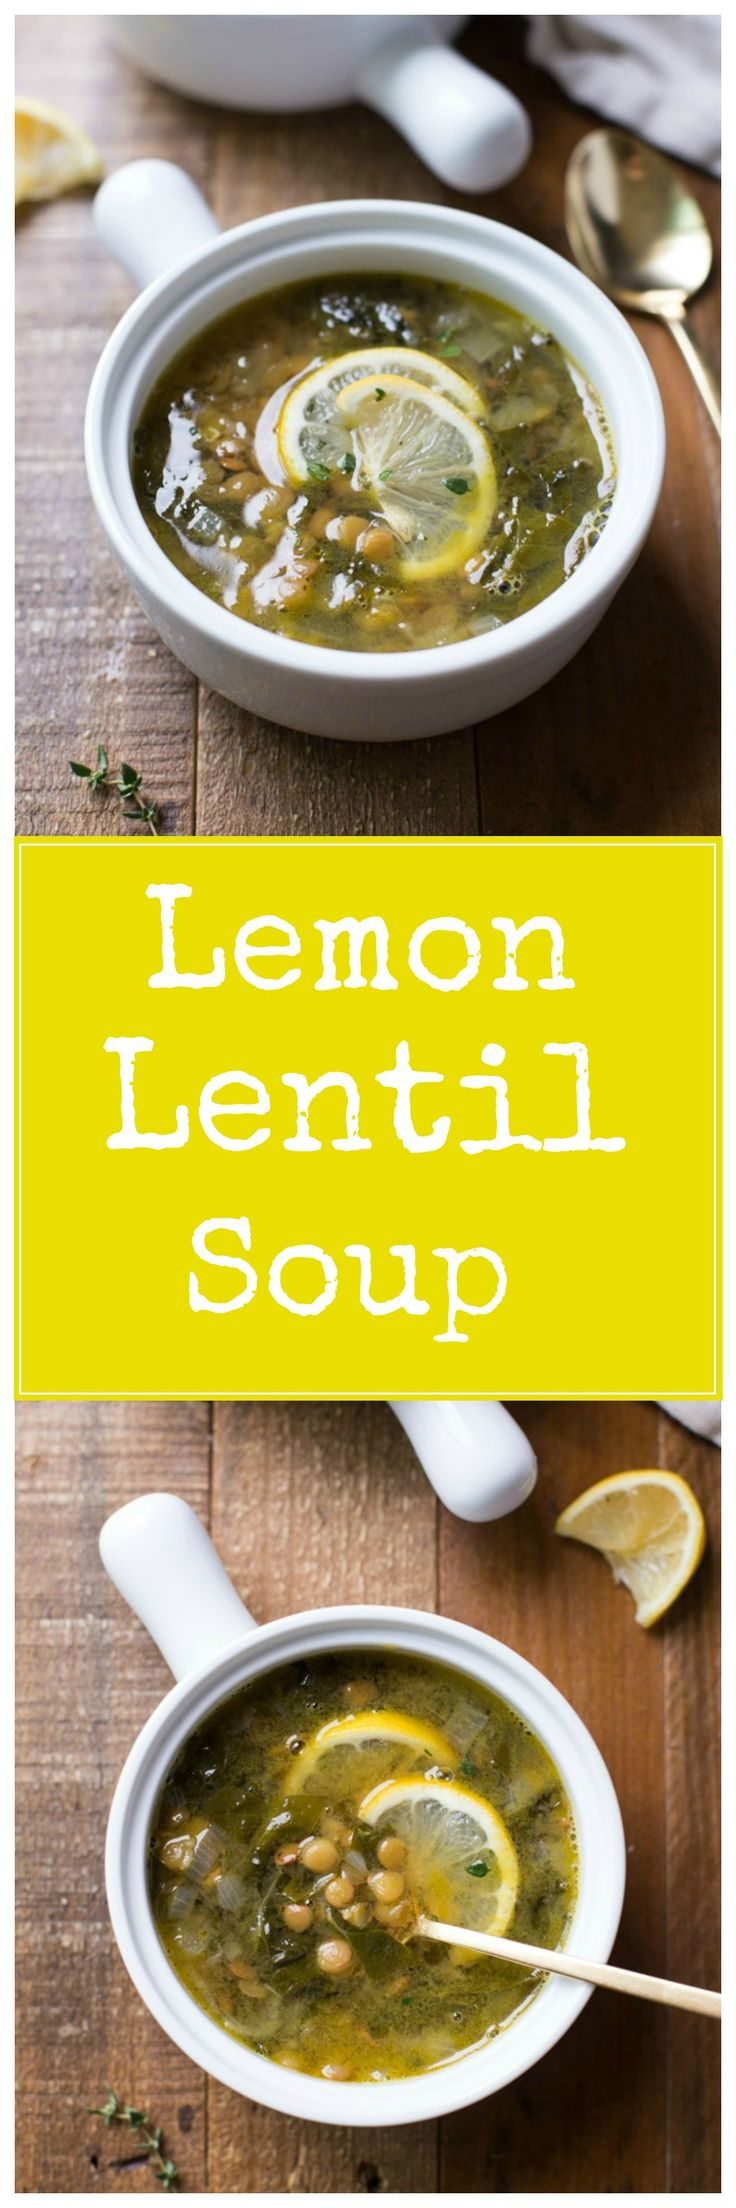 Lemony Lentil & Green Soup- a nourishing and flavorful soup made with just 5 ingredients! (vegan + gluten-free)